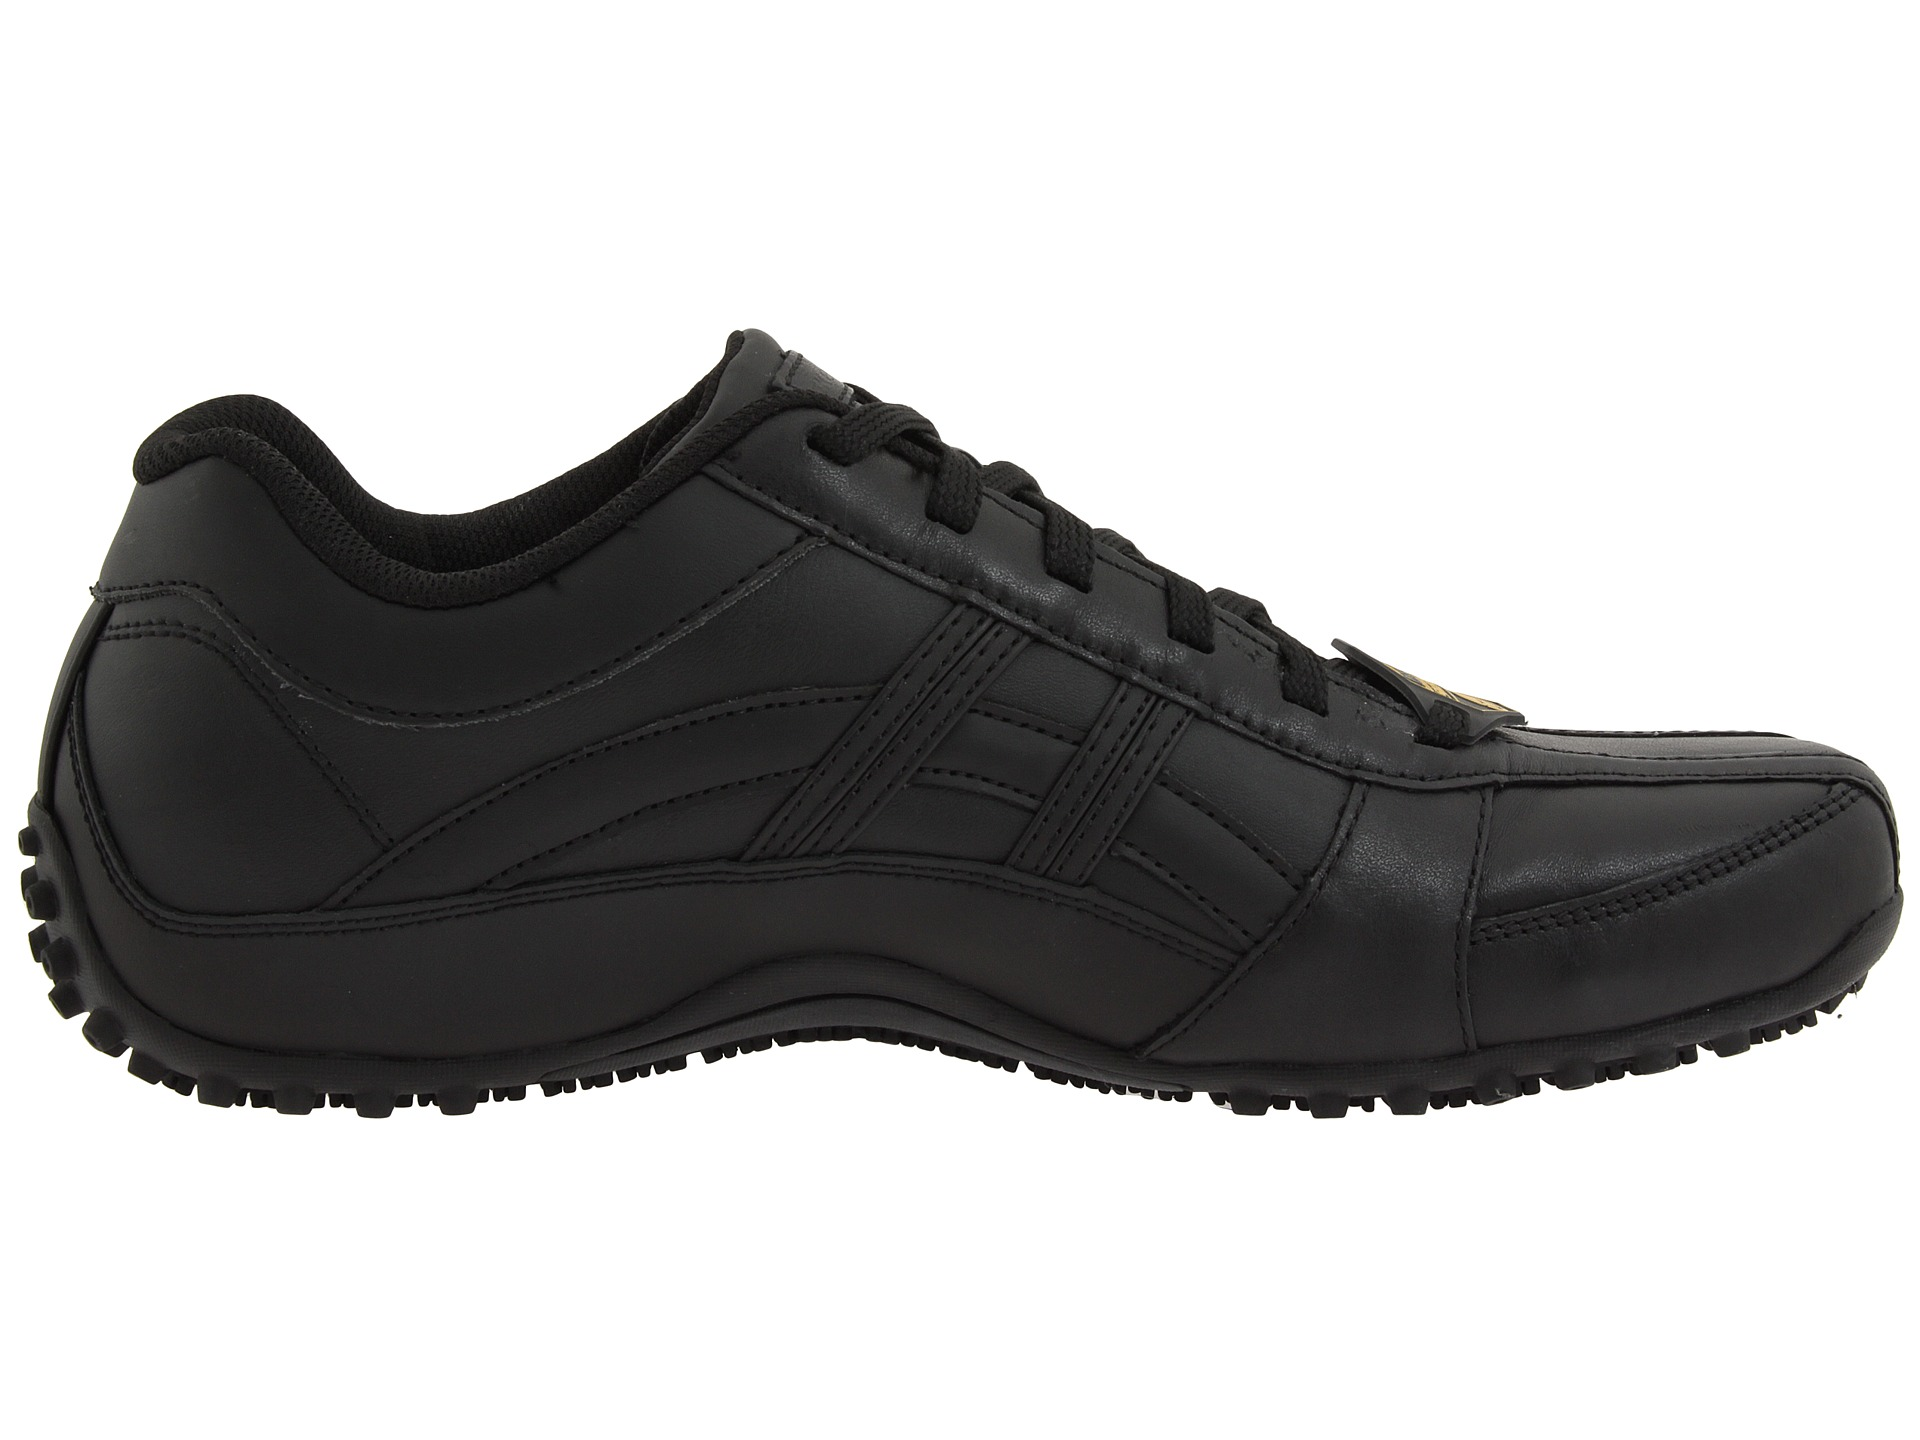 buy black sketcher shoes gt off63 discounted